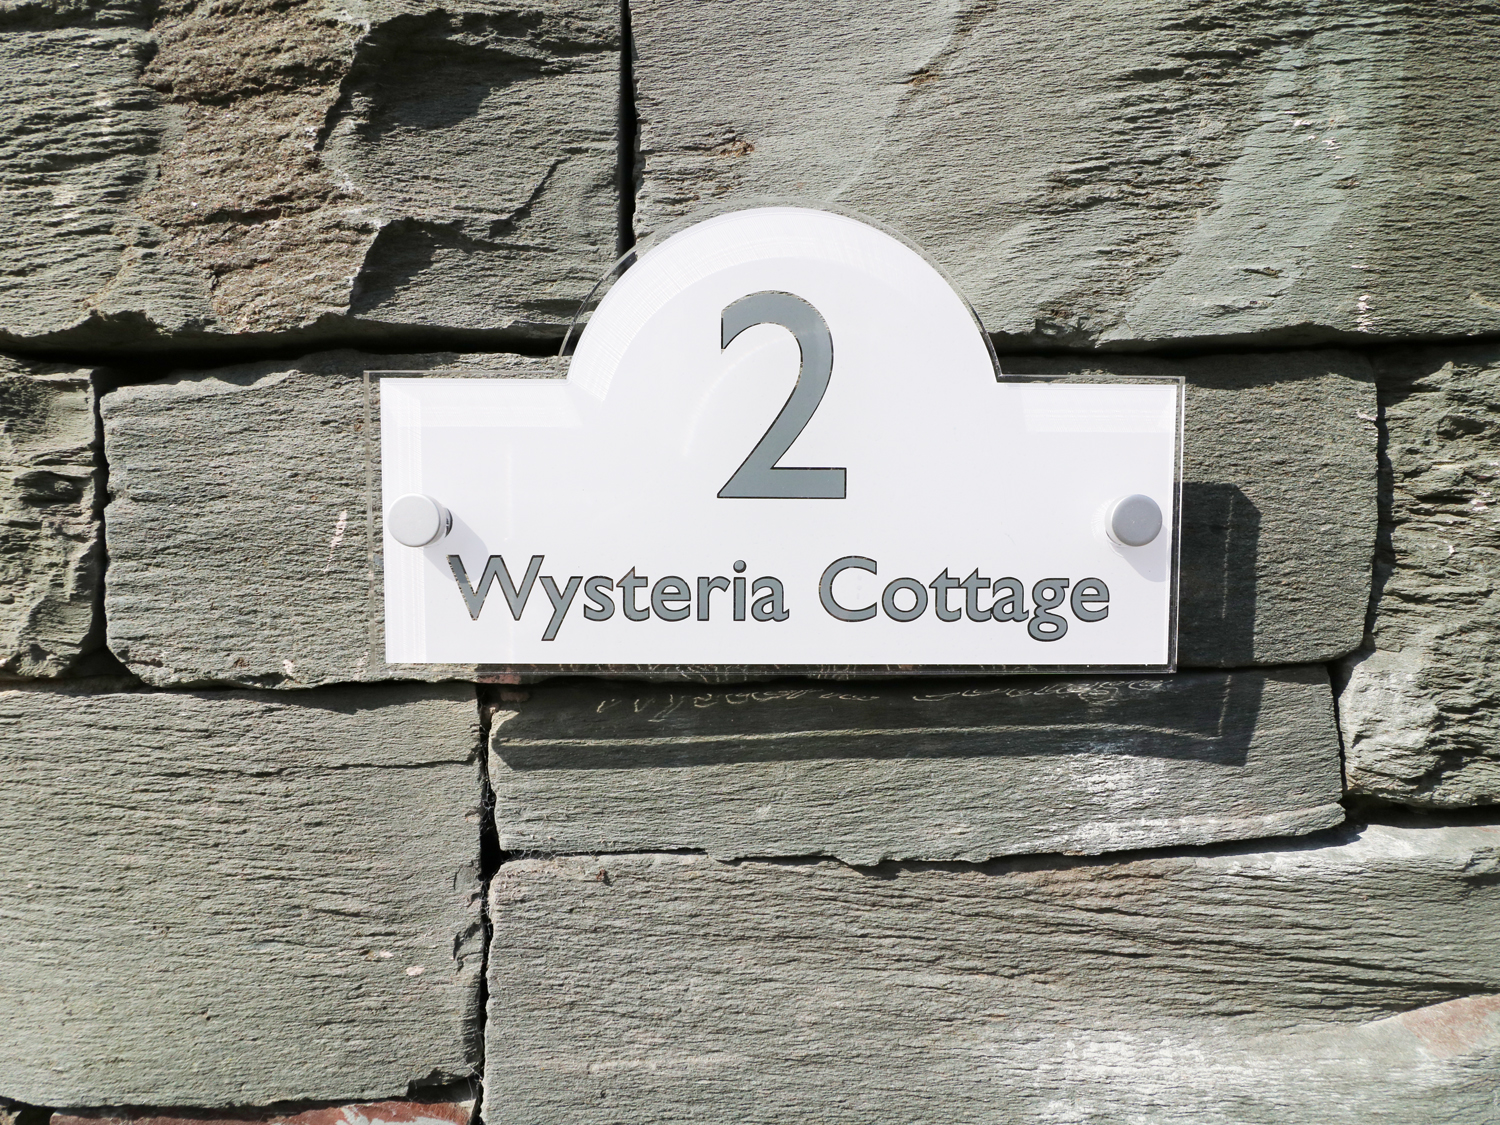 Wysteria Cottage